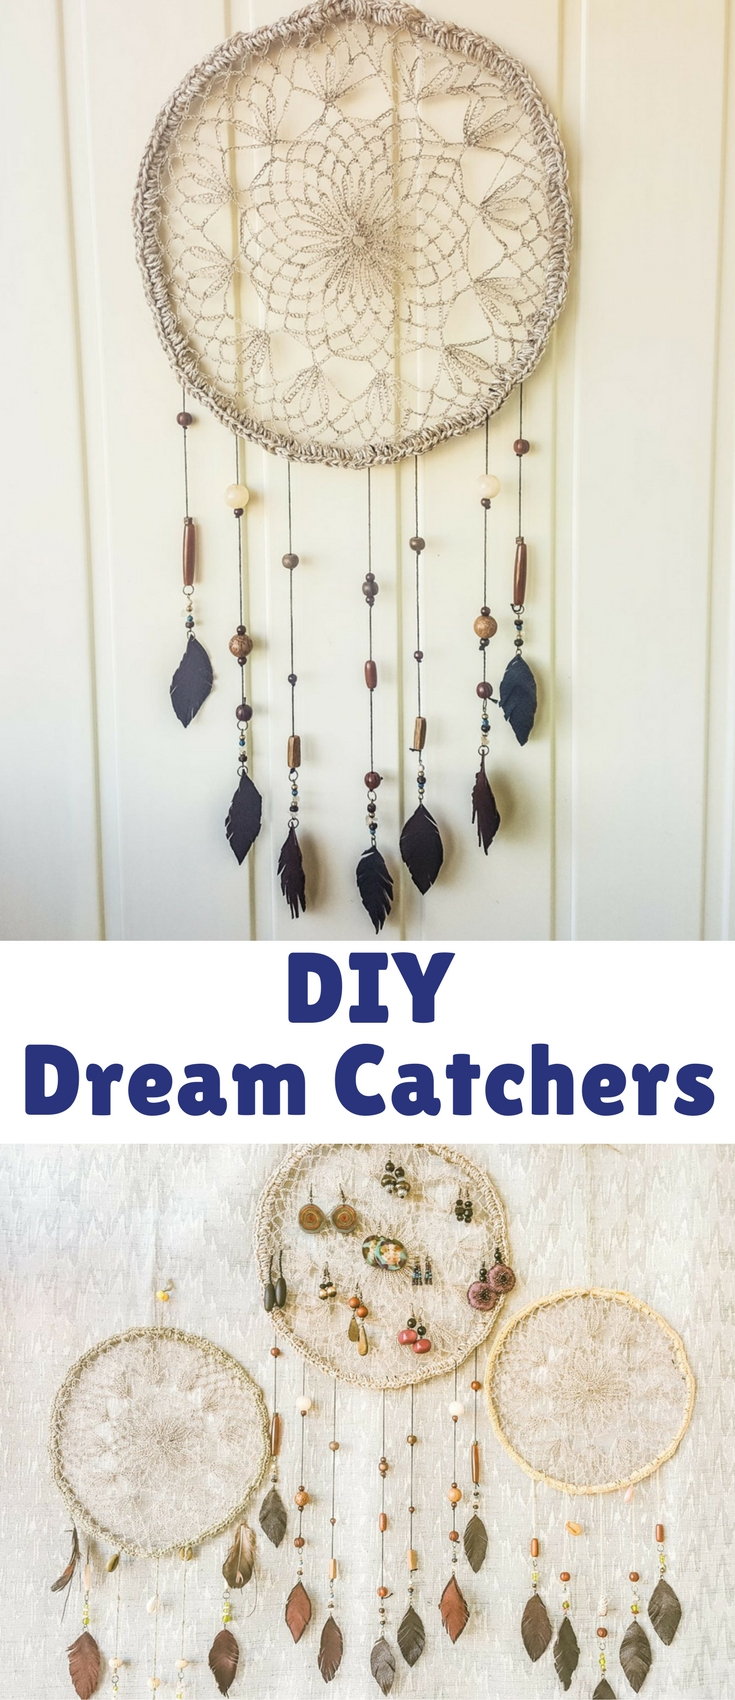 Hang your DIY dream catcher in a nice place and admire! I also made two smaller ones to create a matching set.